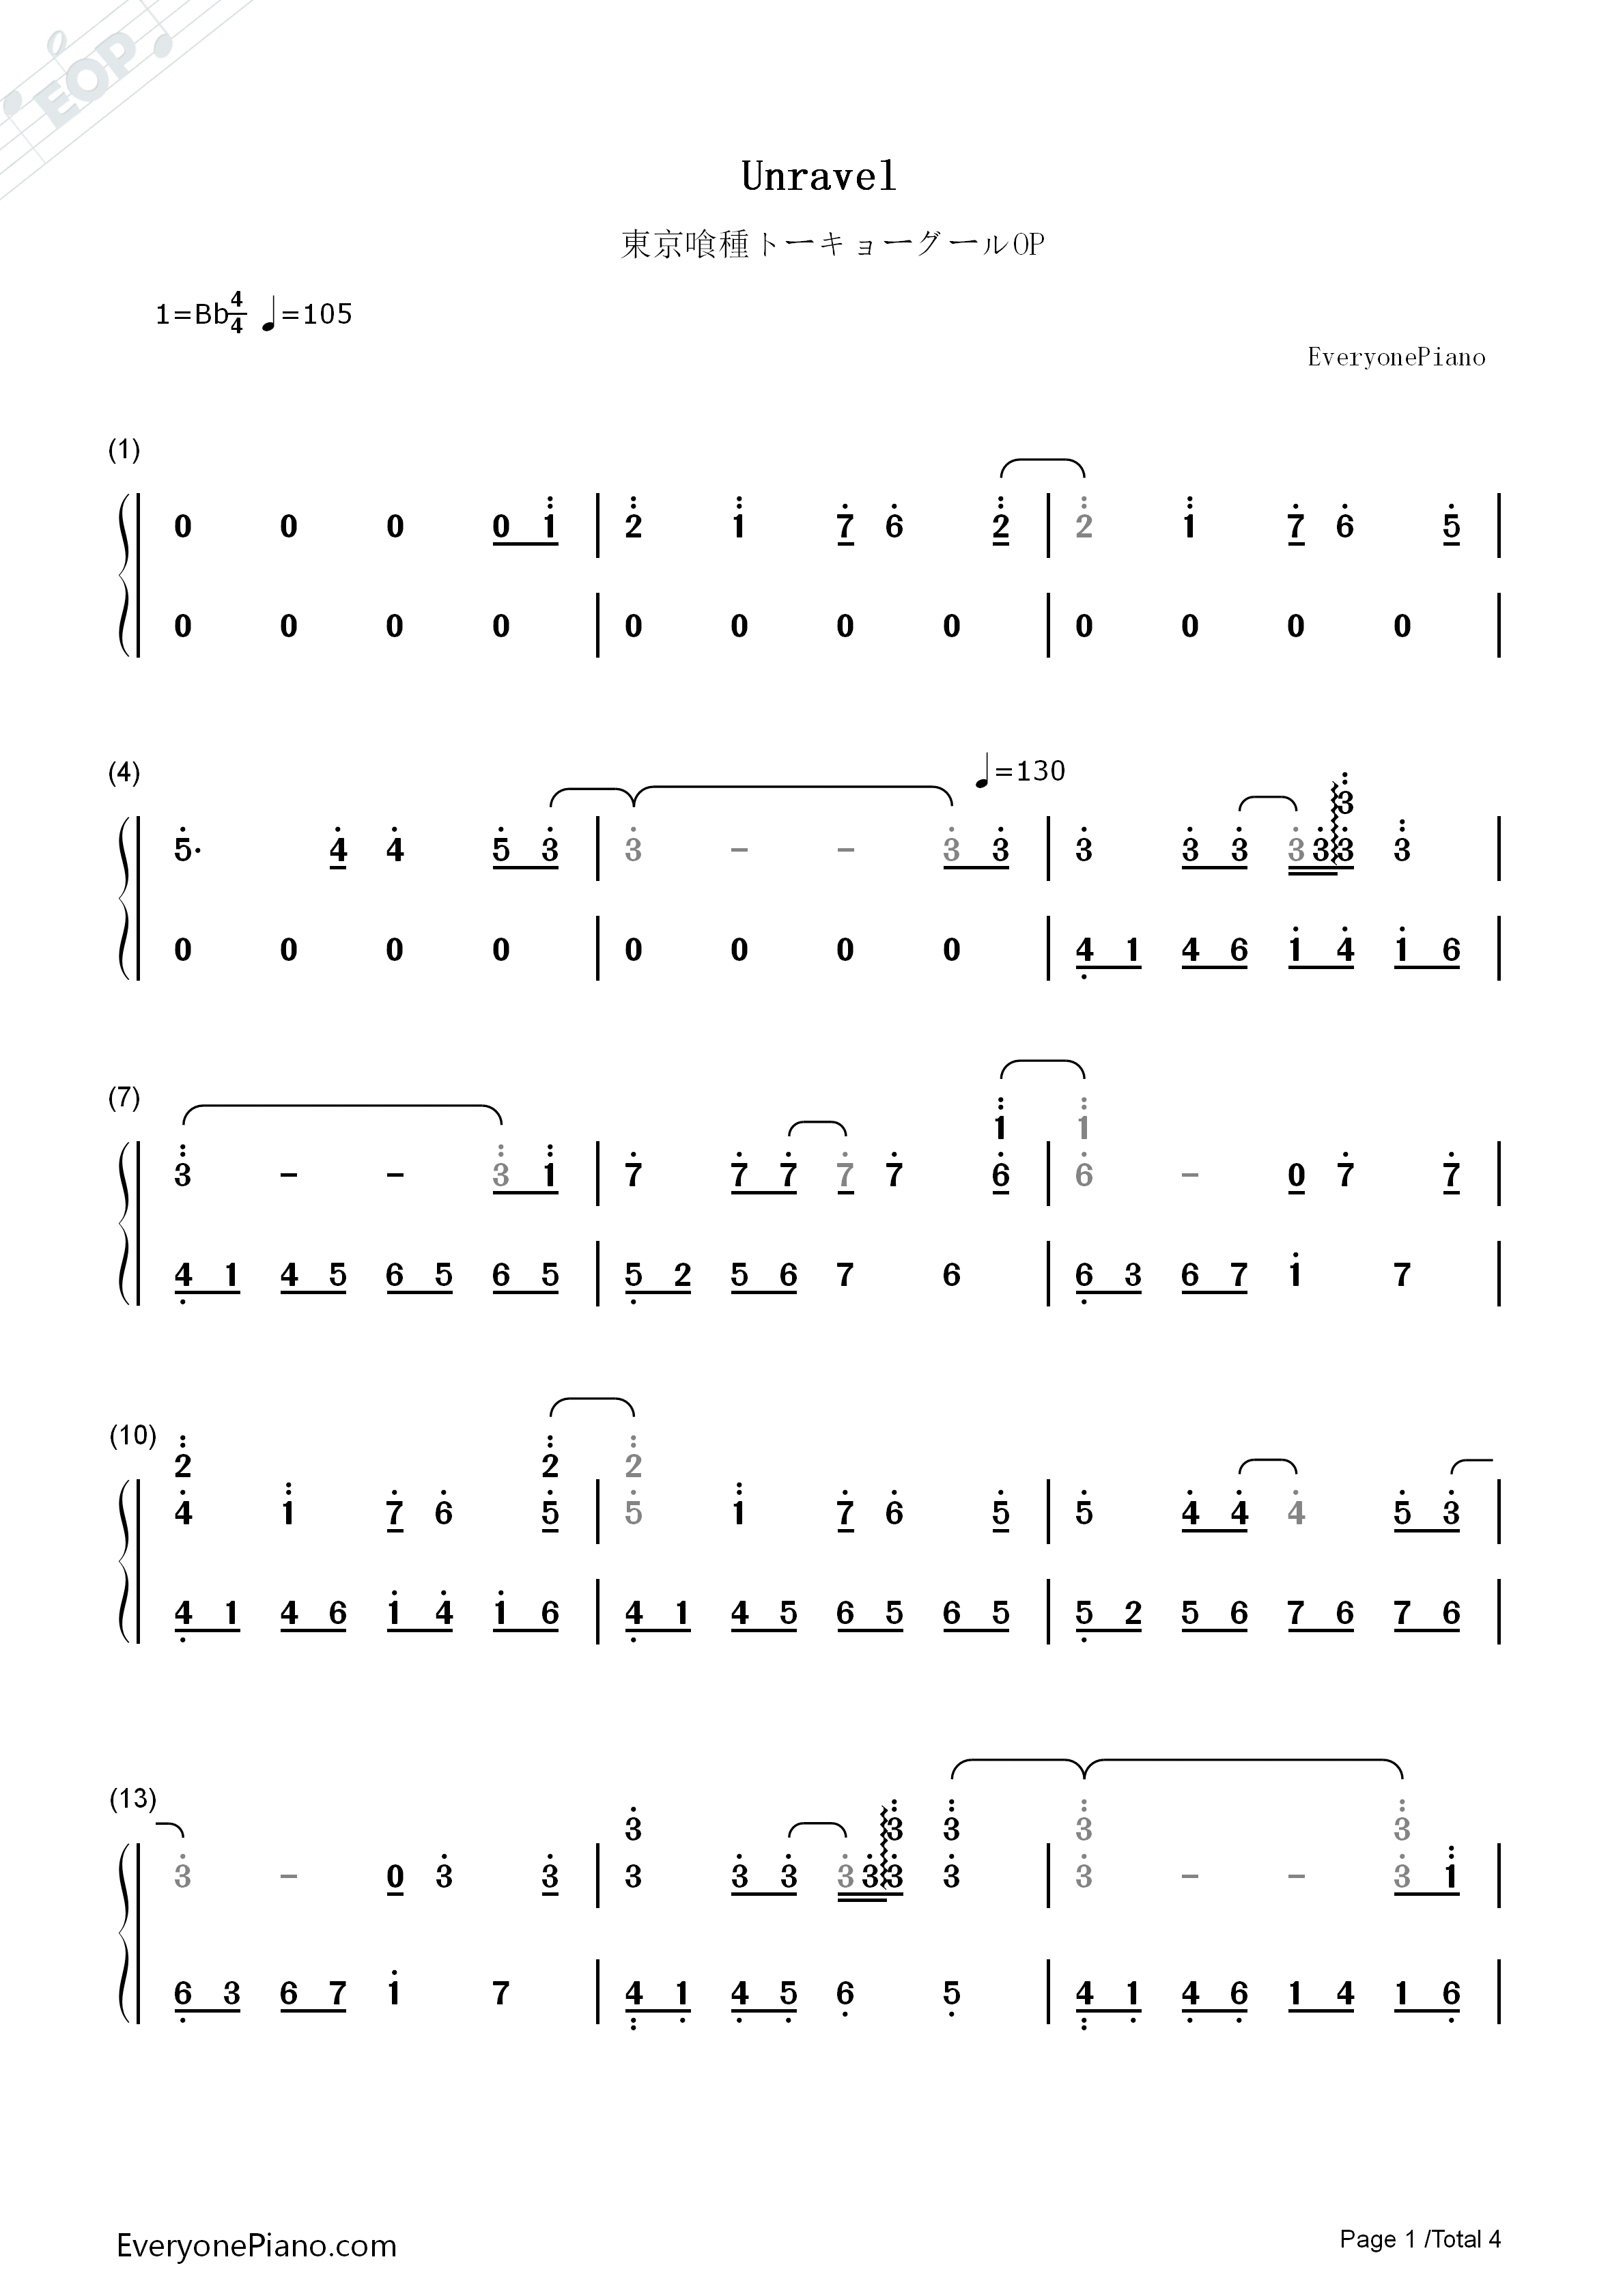 Unravel-Tokyo Ghoul OP Numbered Musical Notation Preview 1-Free Piano Sheet Music u0026 Piano Chords